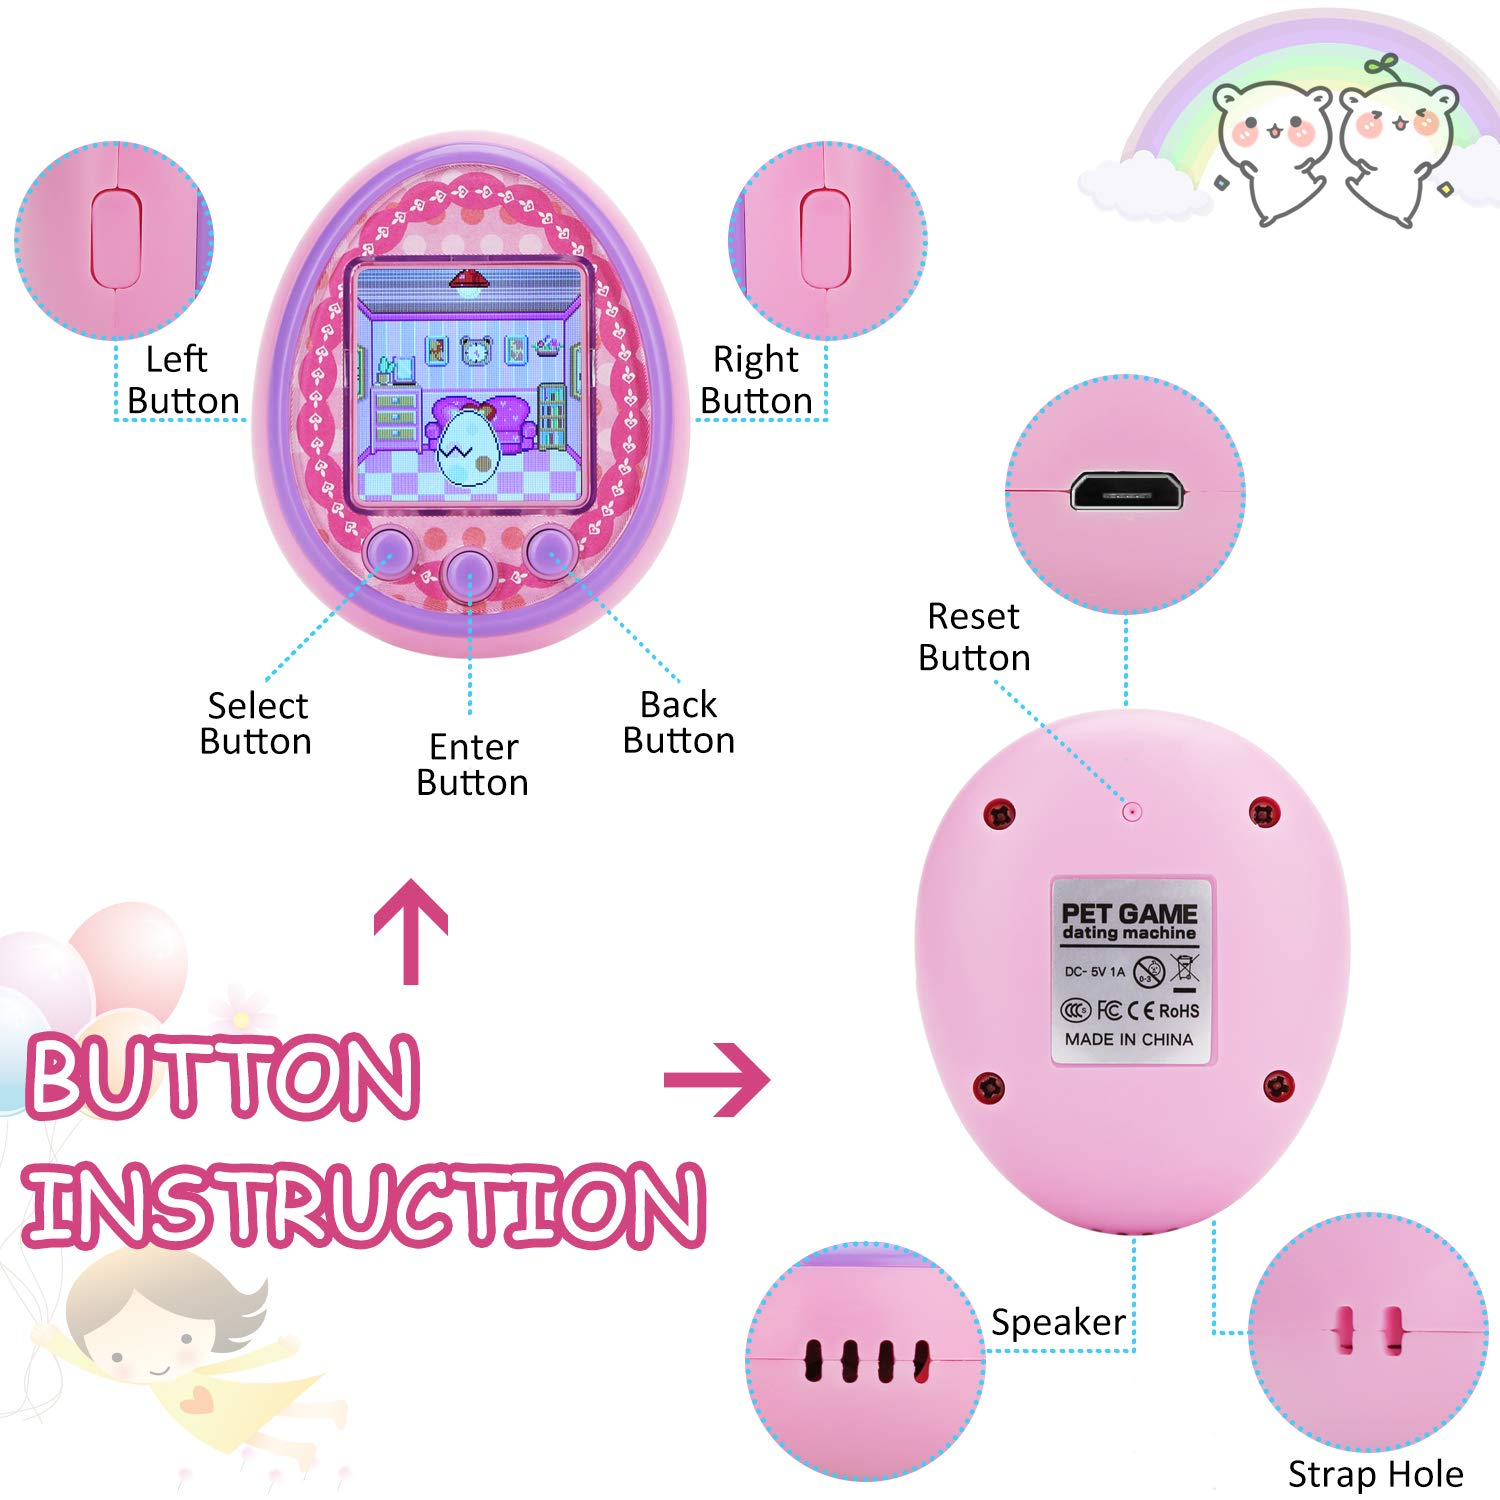 Virtual Digital Pets Toys Electronic Pets Game Machine HD Color Screen for Over 6 Years Old Child Toy 2019 New Version as a Best Birthday Gift for Boys Girls by Touma pets (Image #7)